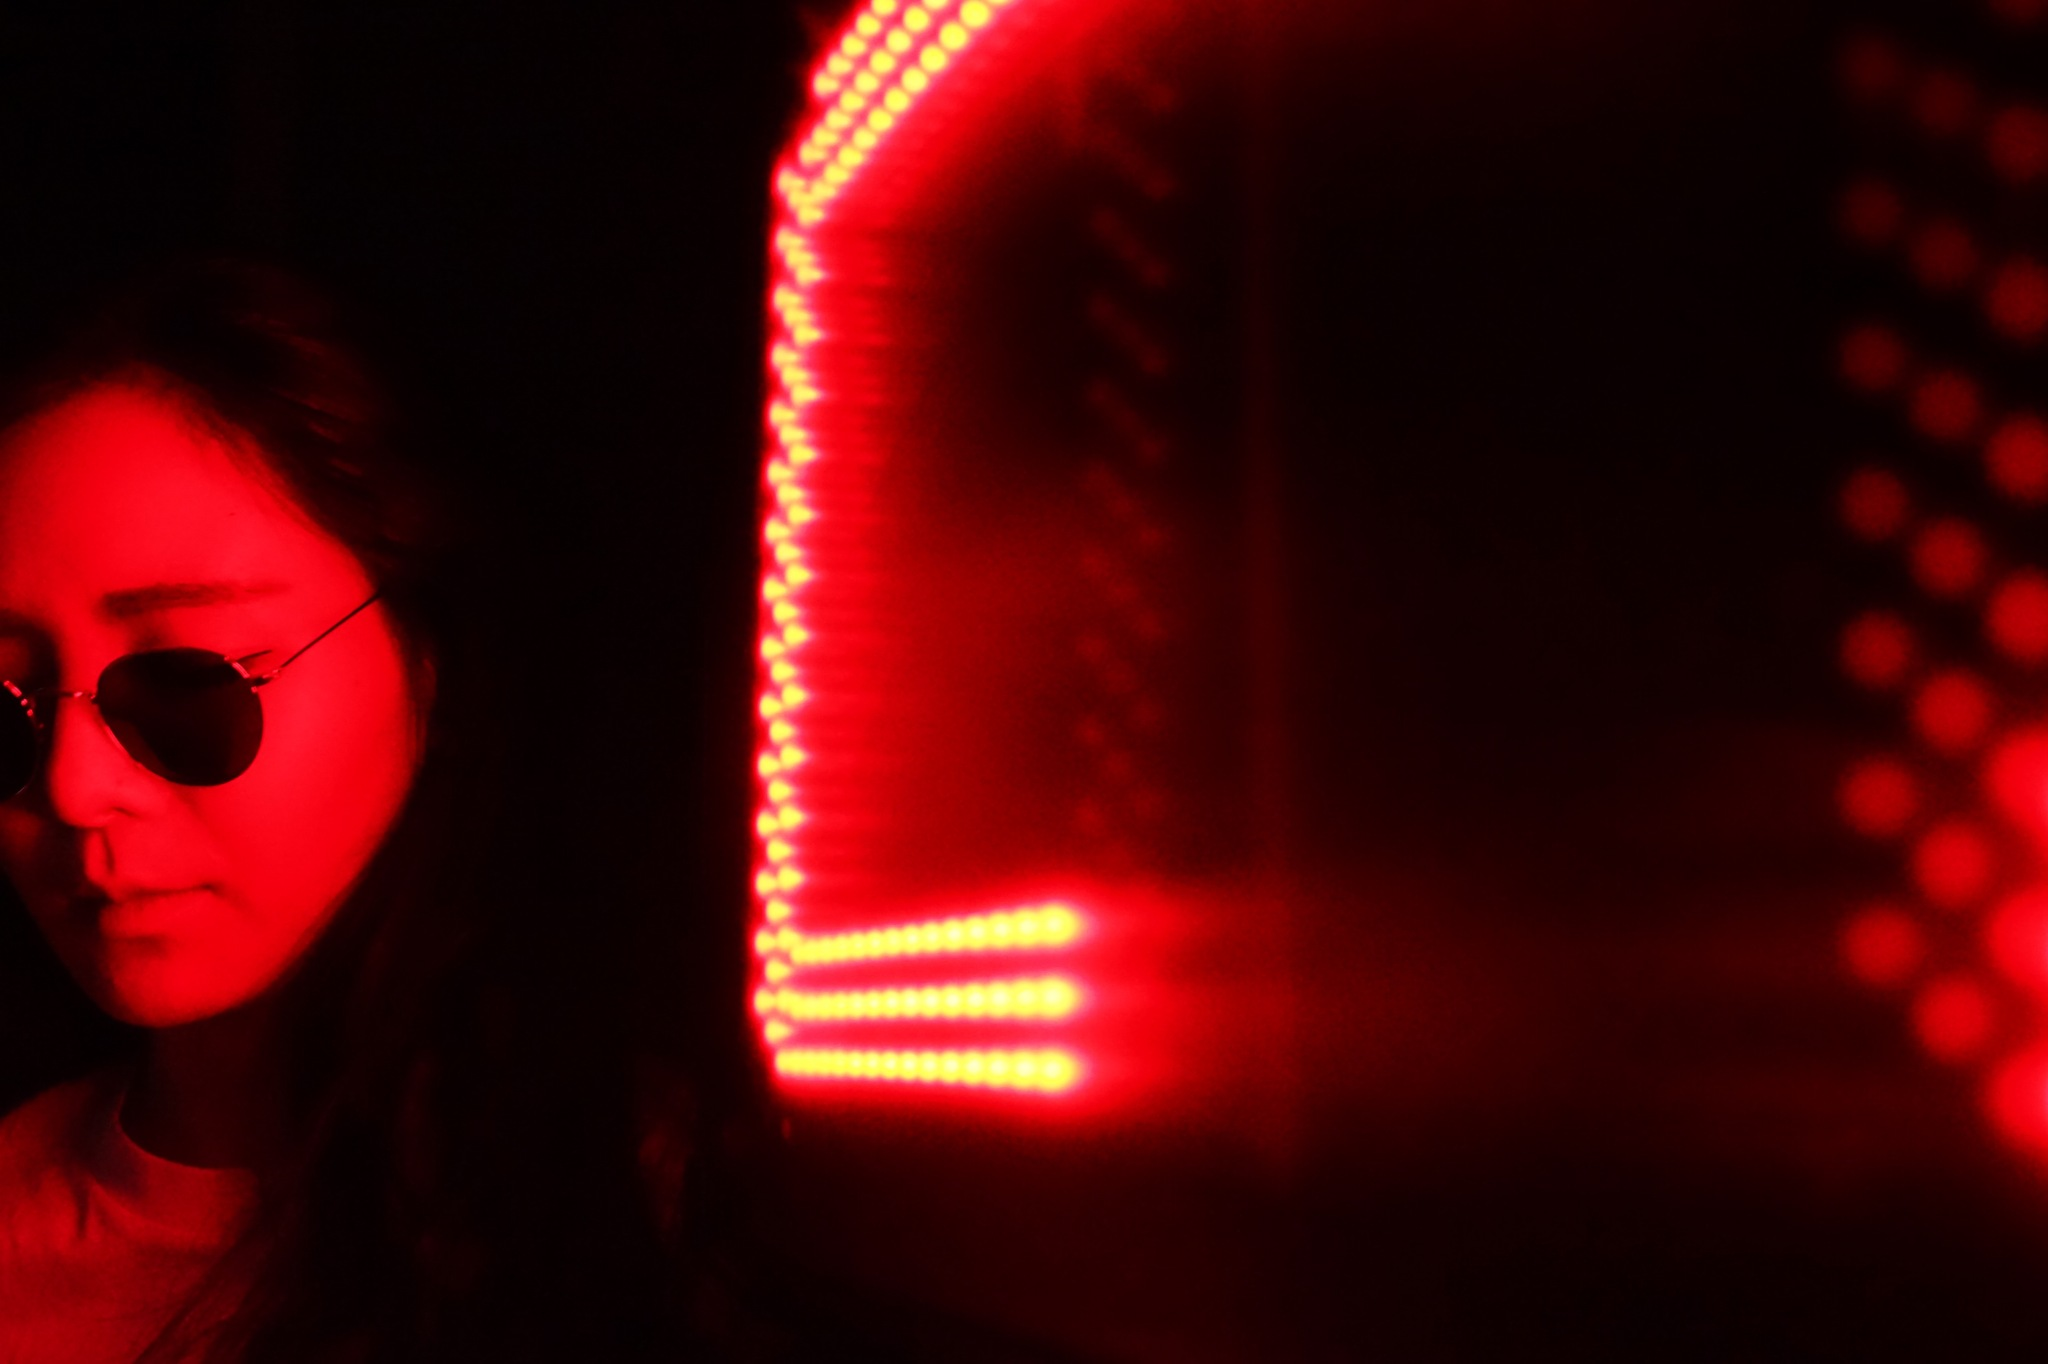 Under red light  by Alen Ovuka